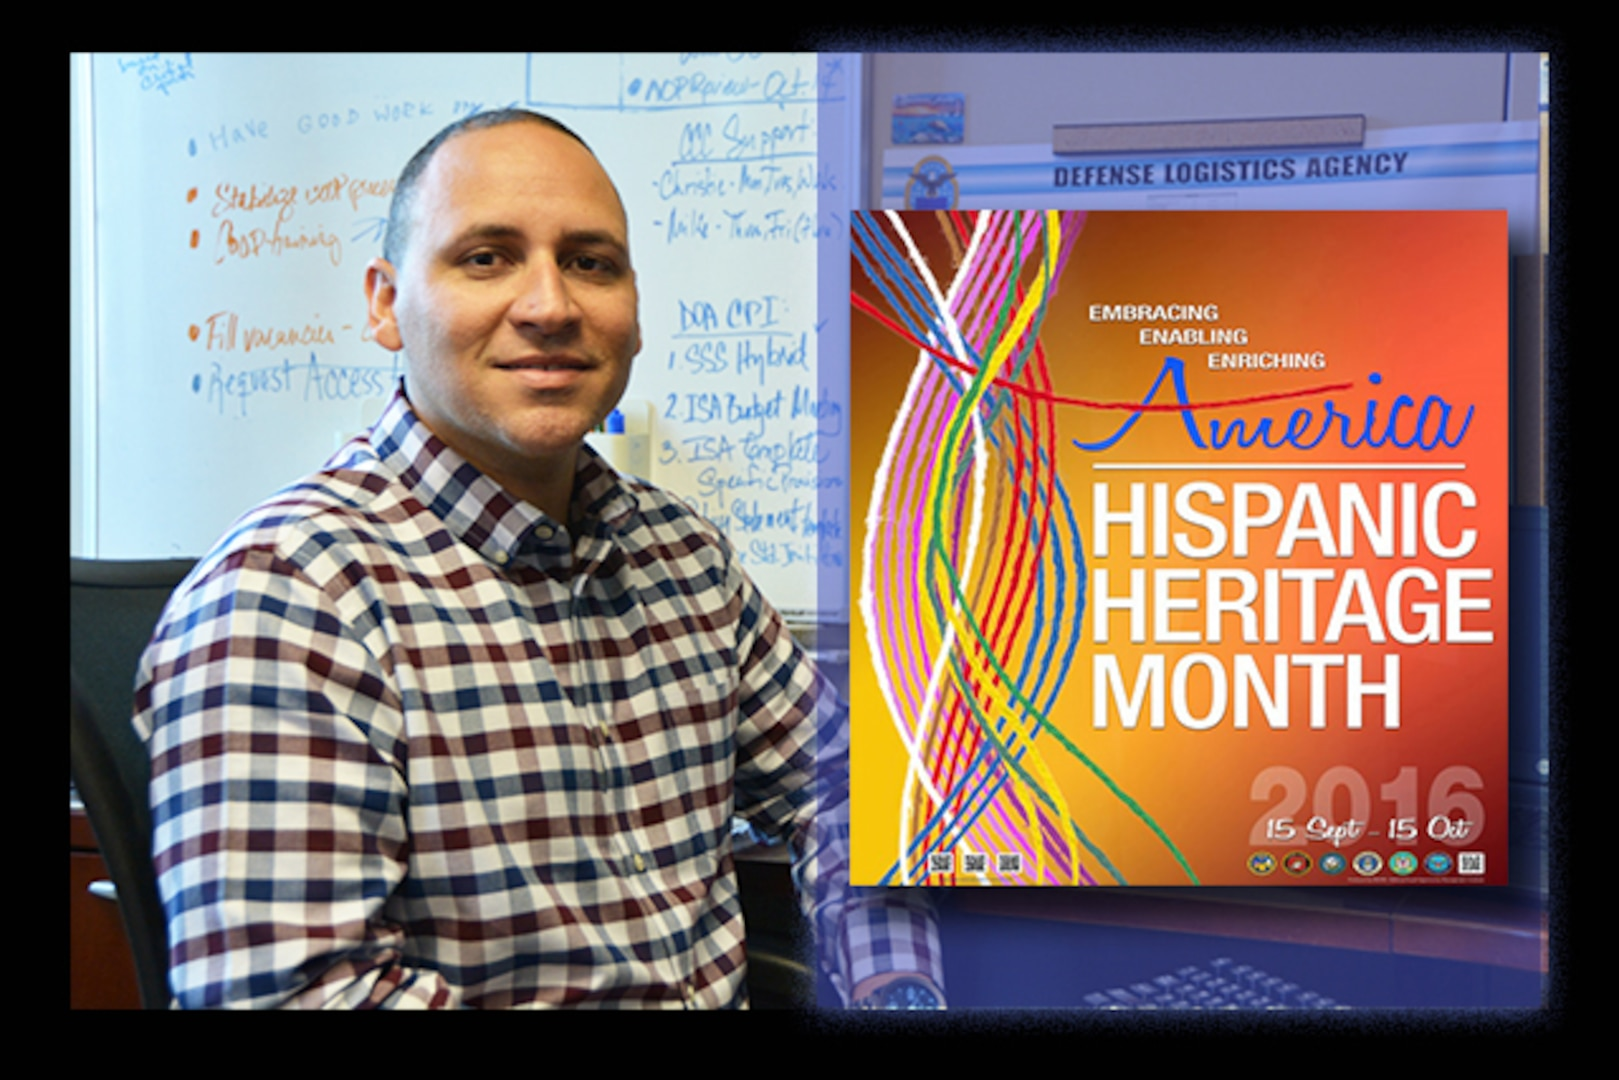 """The 2016 Hispanic Heritage Month theme, """"Embracing, Enriching, and Enabling America"""" was submitted by Defense Logistics Agency Aviation employee, Maurice Sanabria, chief, Command Programs Office in the Command Support Directorate in Richmond, Virginia. This is the second national theme win for Sanabria. His theme was also selected in 2012. Hispanic Heritage Month is celebrated annually from Sept. 15 through Oct. 15 by presidential proclamation."""